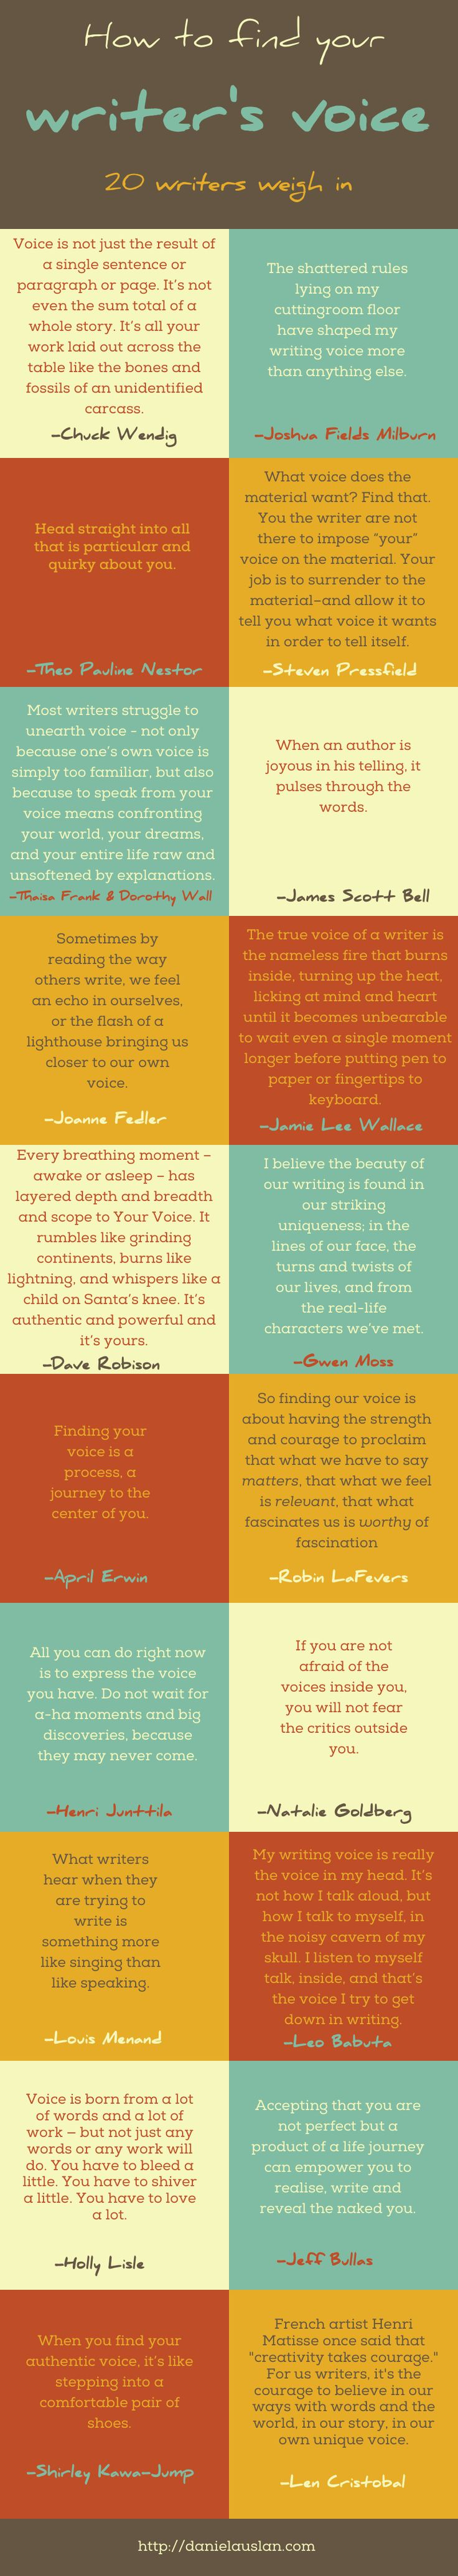 How to find your writer's voice: 20 writers weigh in (+ an awesome infographic)